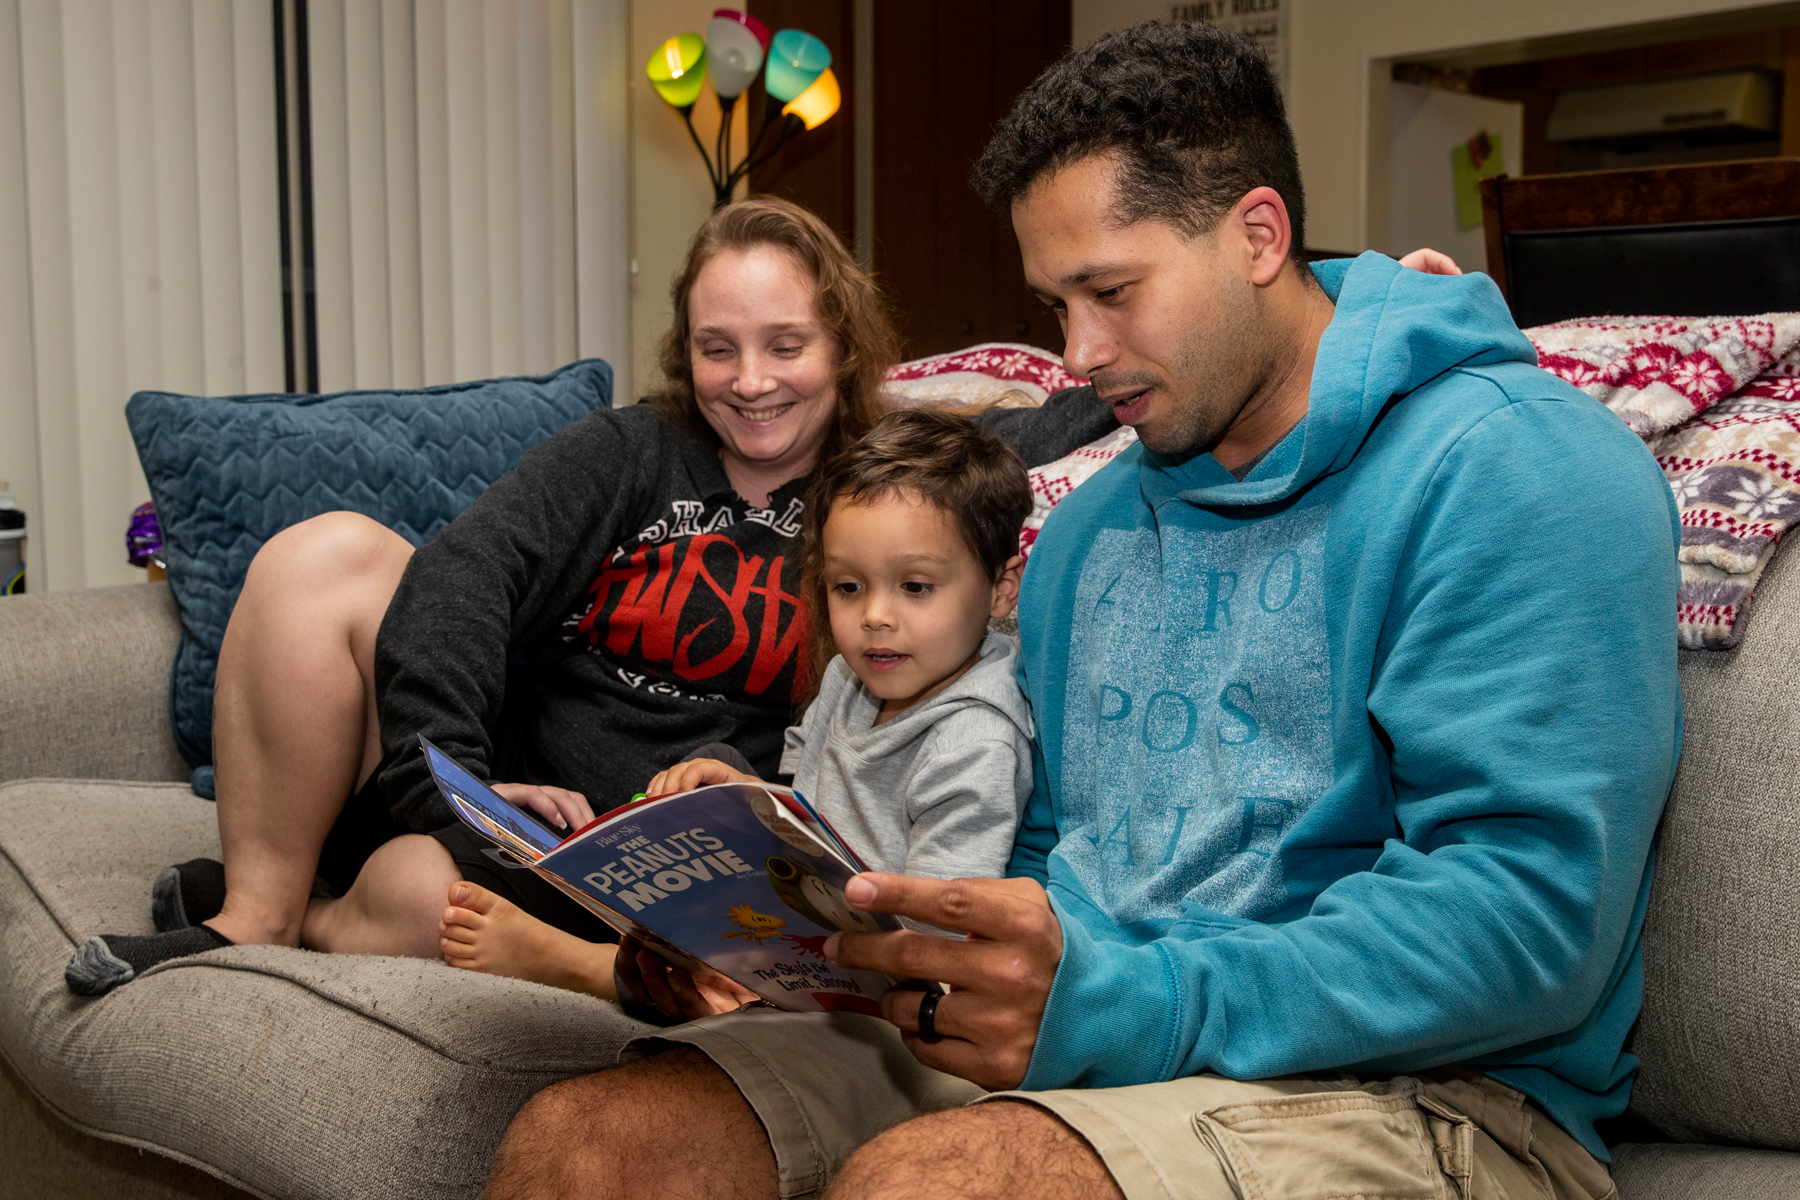 For Military Kids, Reading Can Inspire Resiliency